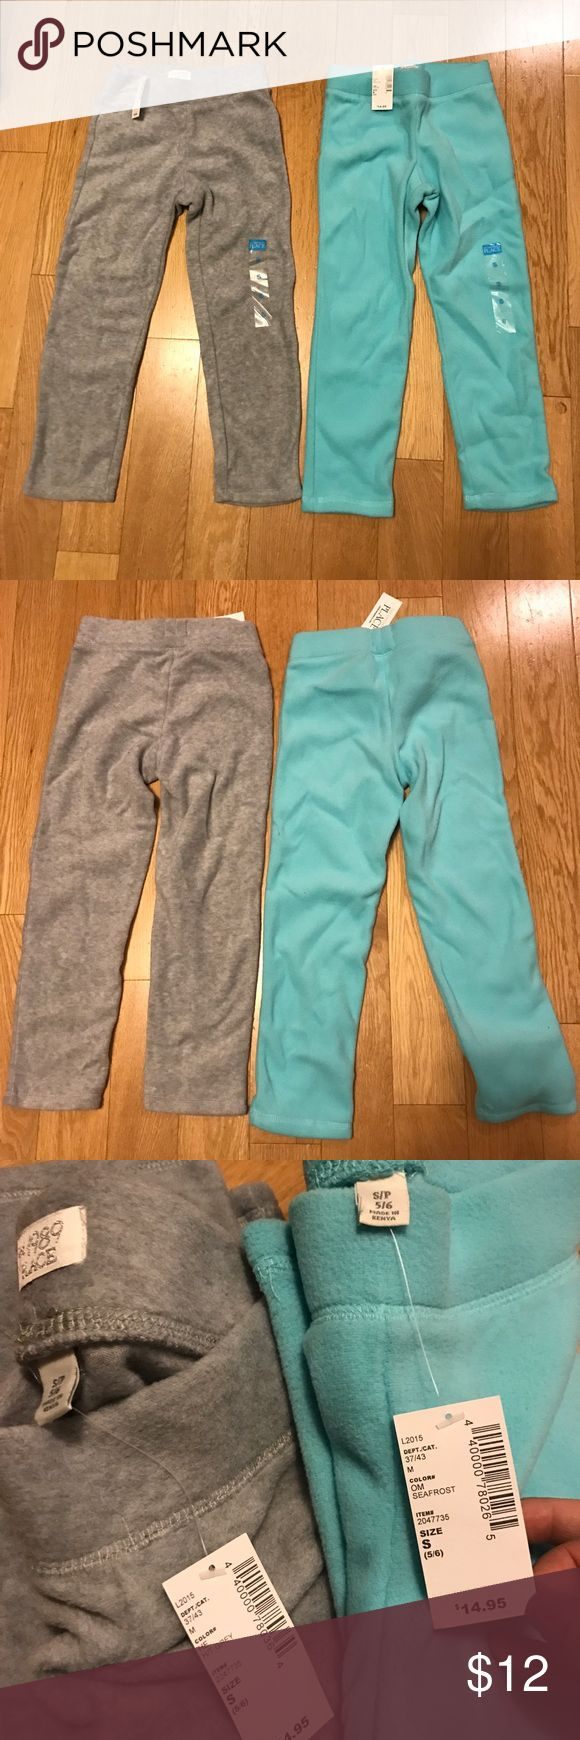 Children's Place Fleece pants NWT children's place fleece pants for girls in seafrost and grey in size small 5/6. Purchased these to gift to someone but ended up forgetting them in my car lol hopefully they can find a new home! Children's Place Bottoms Sweatpants & Joggers